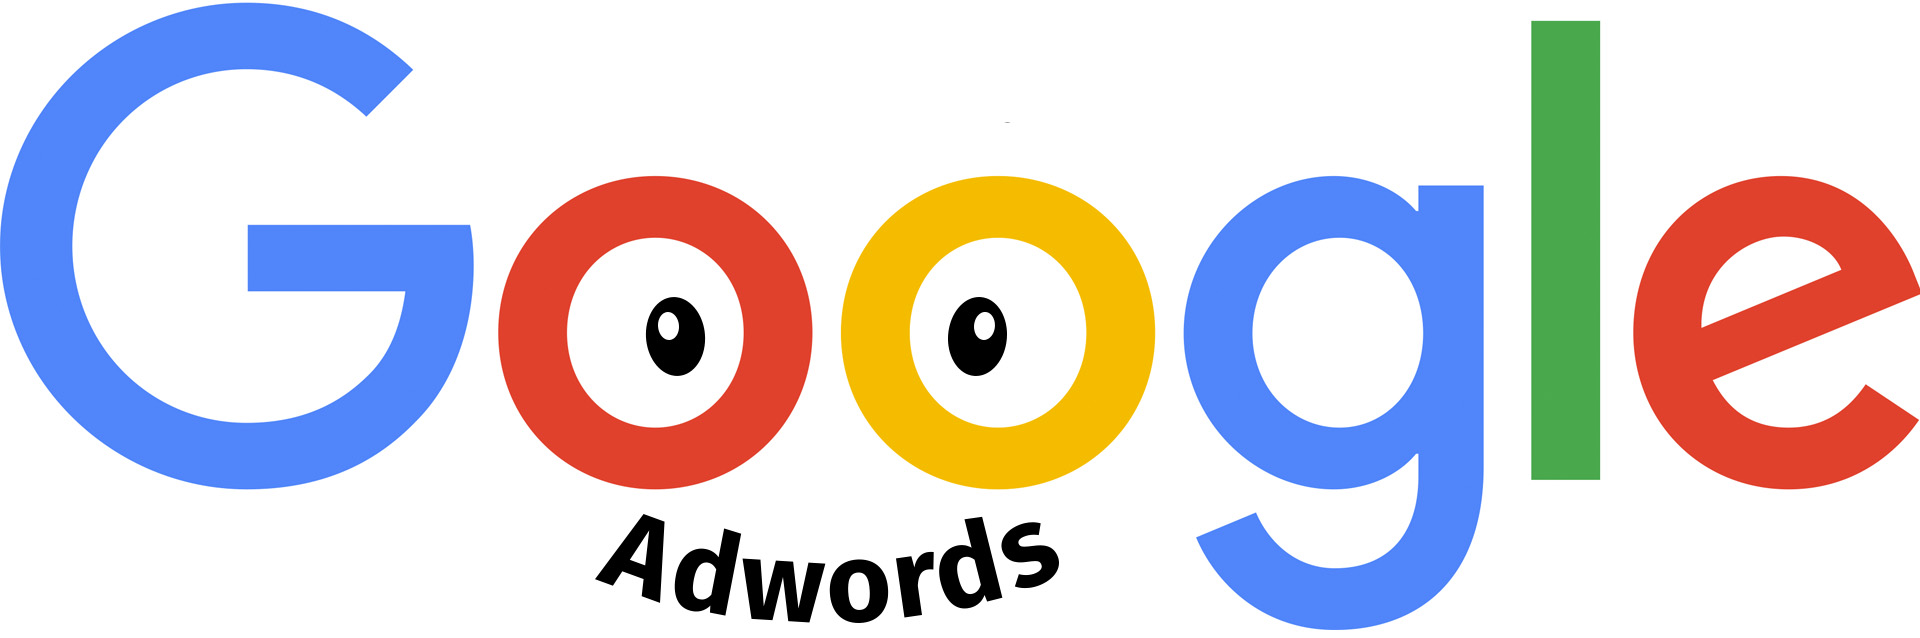 ZANG Media SEM Search Engine Marketing Google Adwords